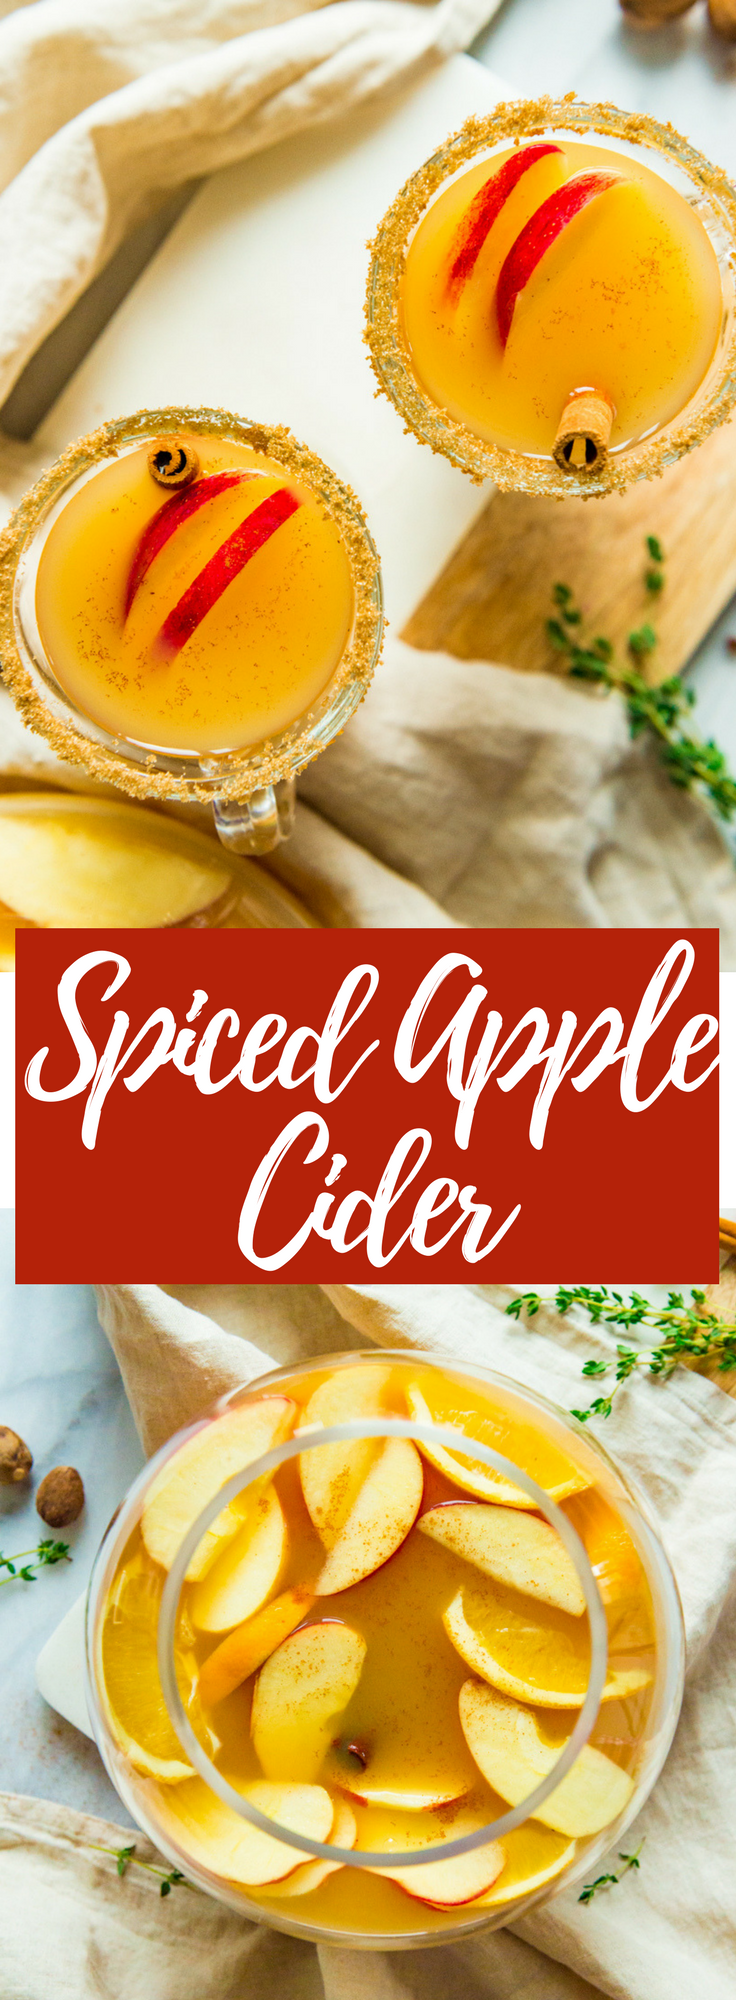 A homemade cider with tons of Fall spices, fresh apple juice and orange juice, warmed with rum for the perfect festive cocktail!